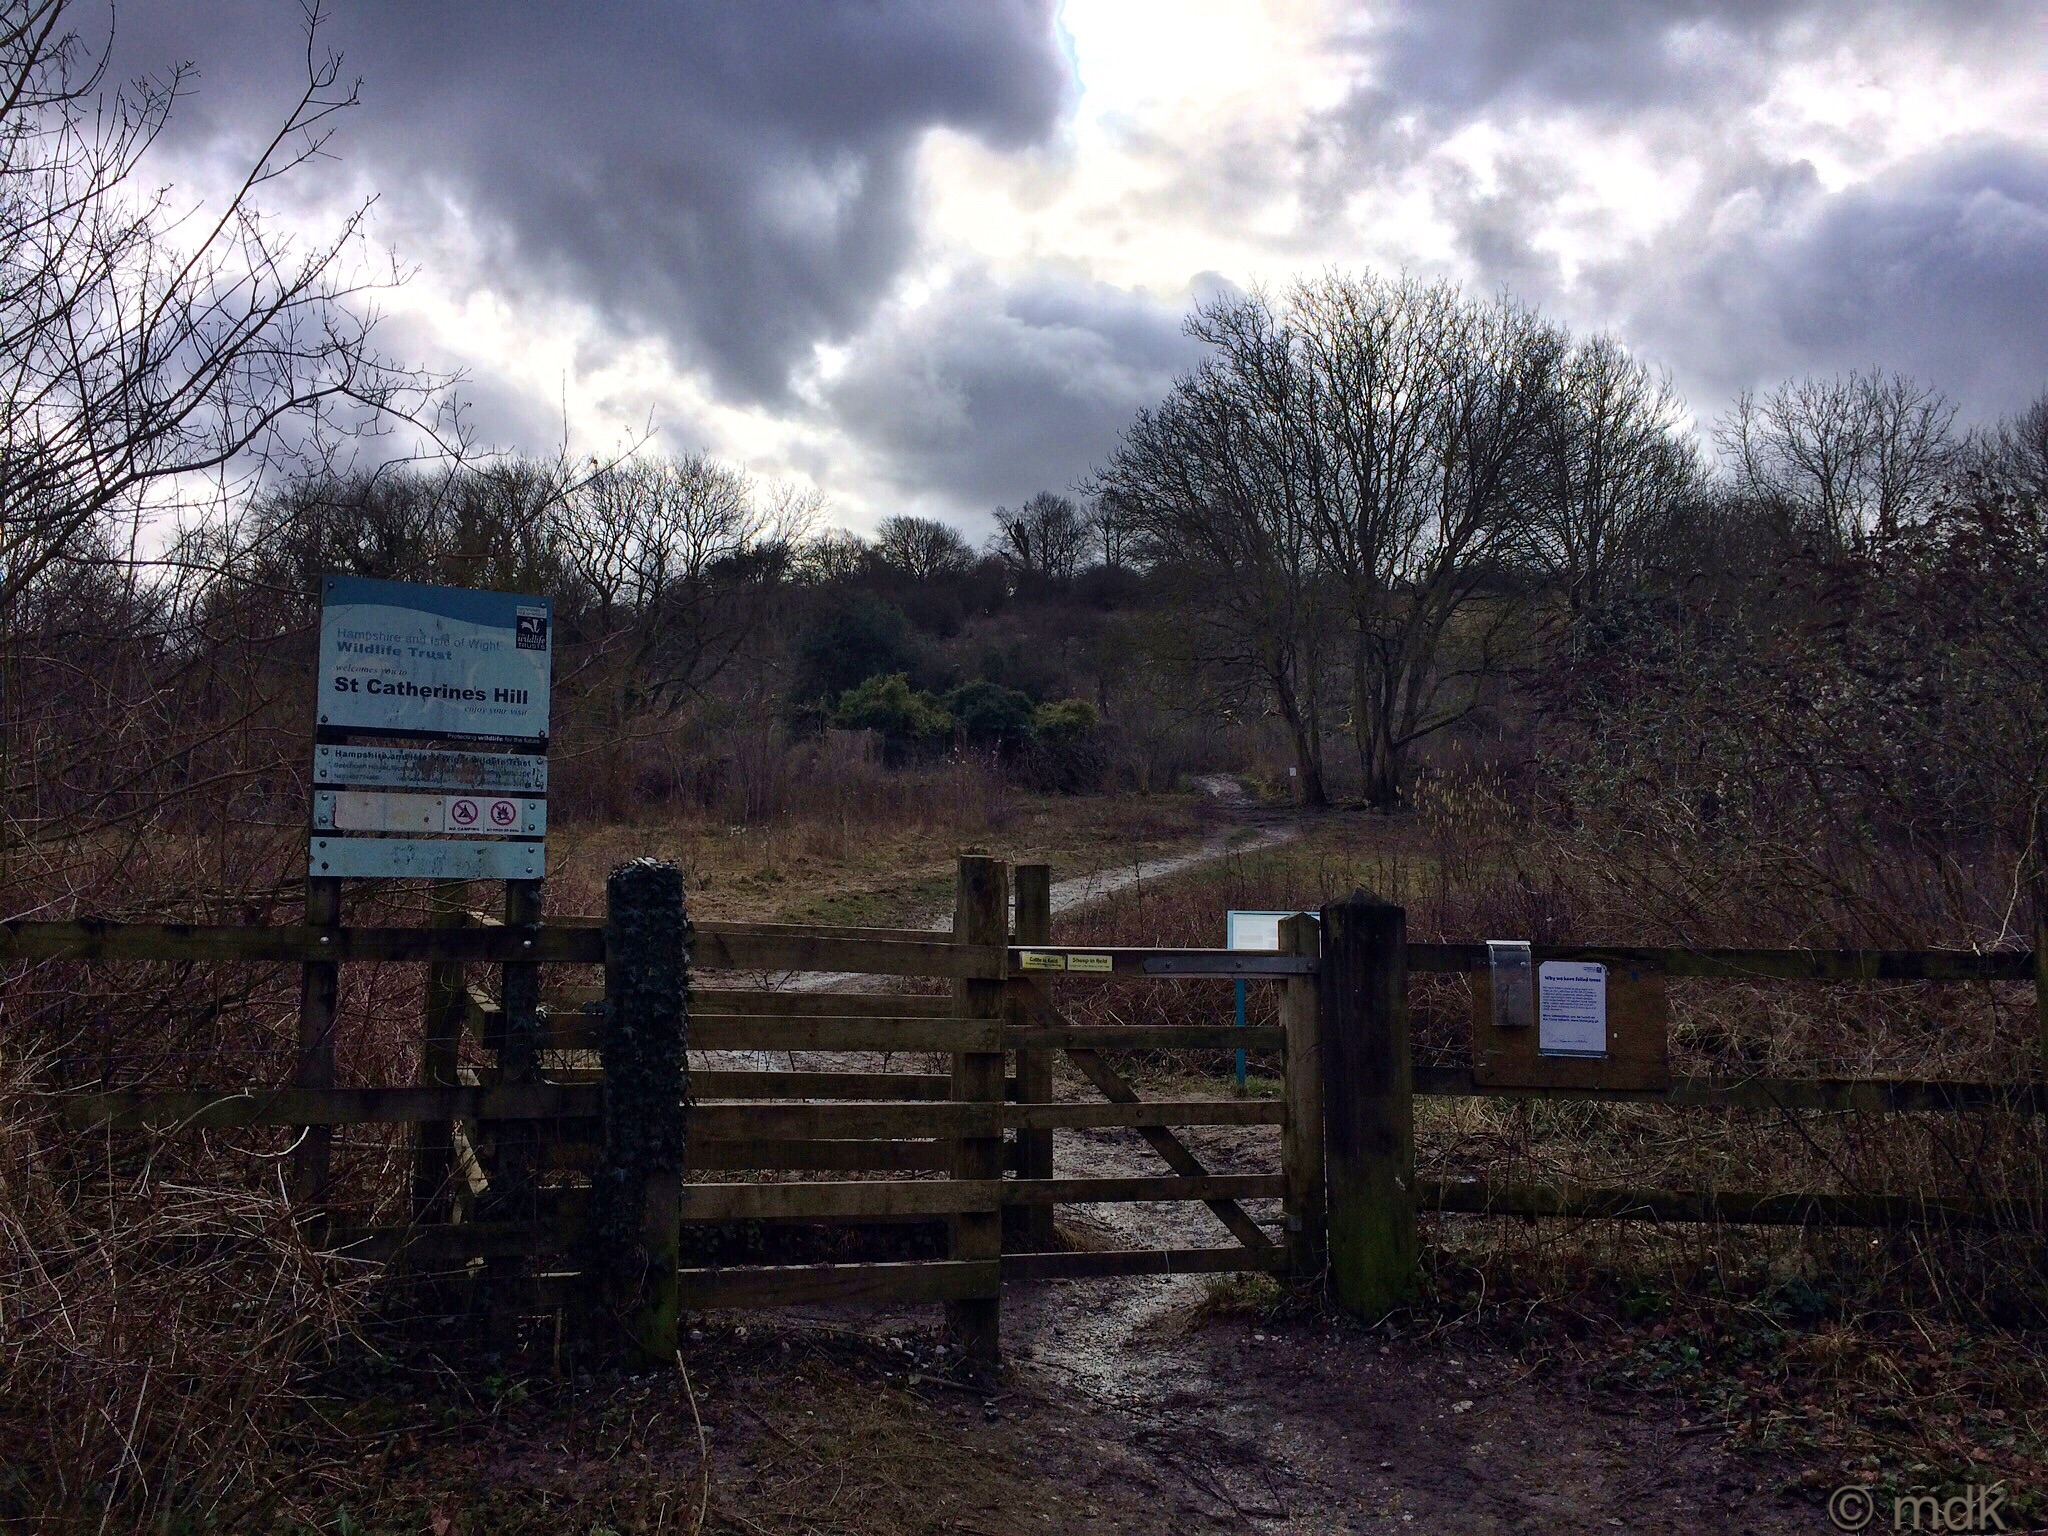 The trail up St Catherine's Hill